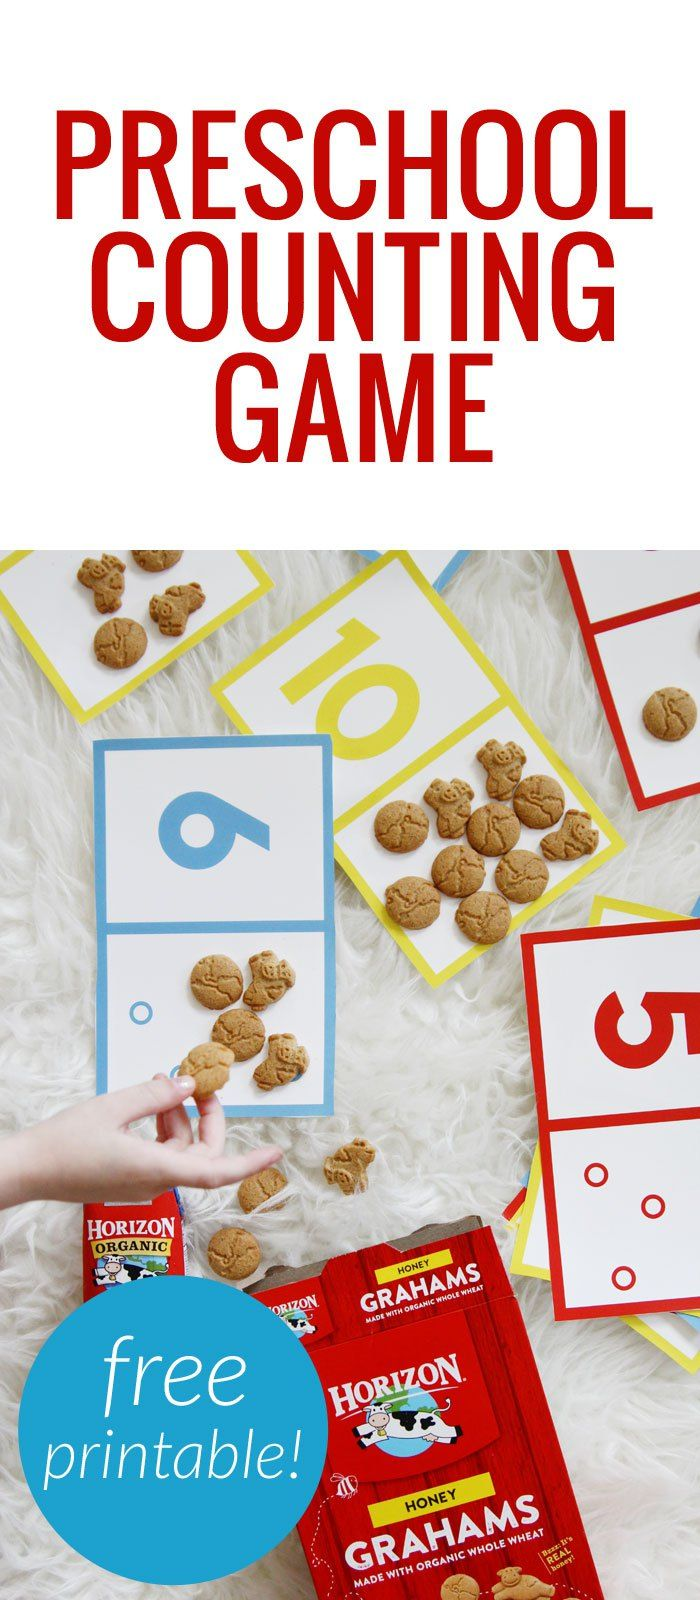 Preschool counting game - cut and print out the cards and have kids count the dots with snacks and recognize numbers! #HorizonOrganic…